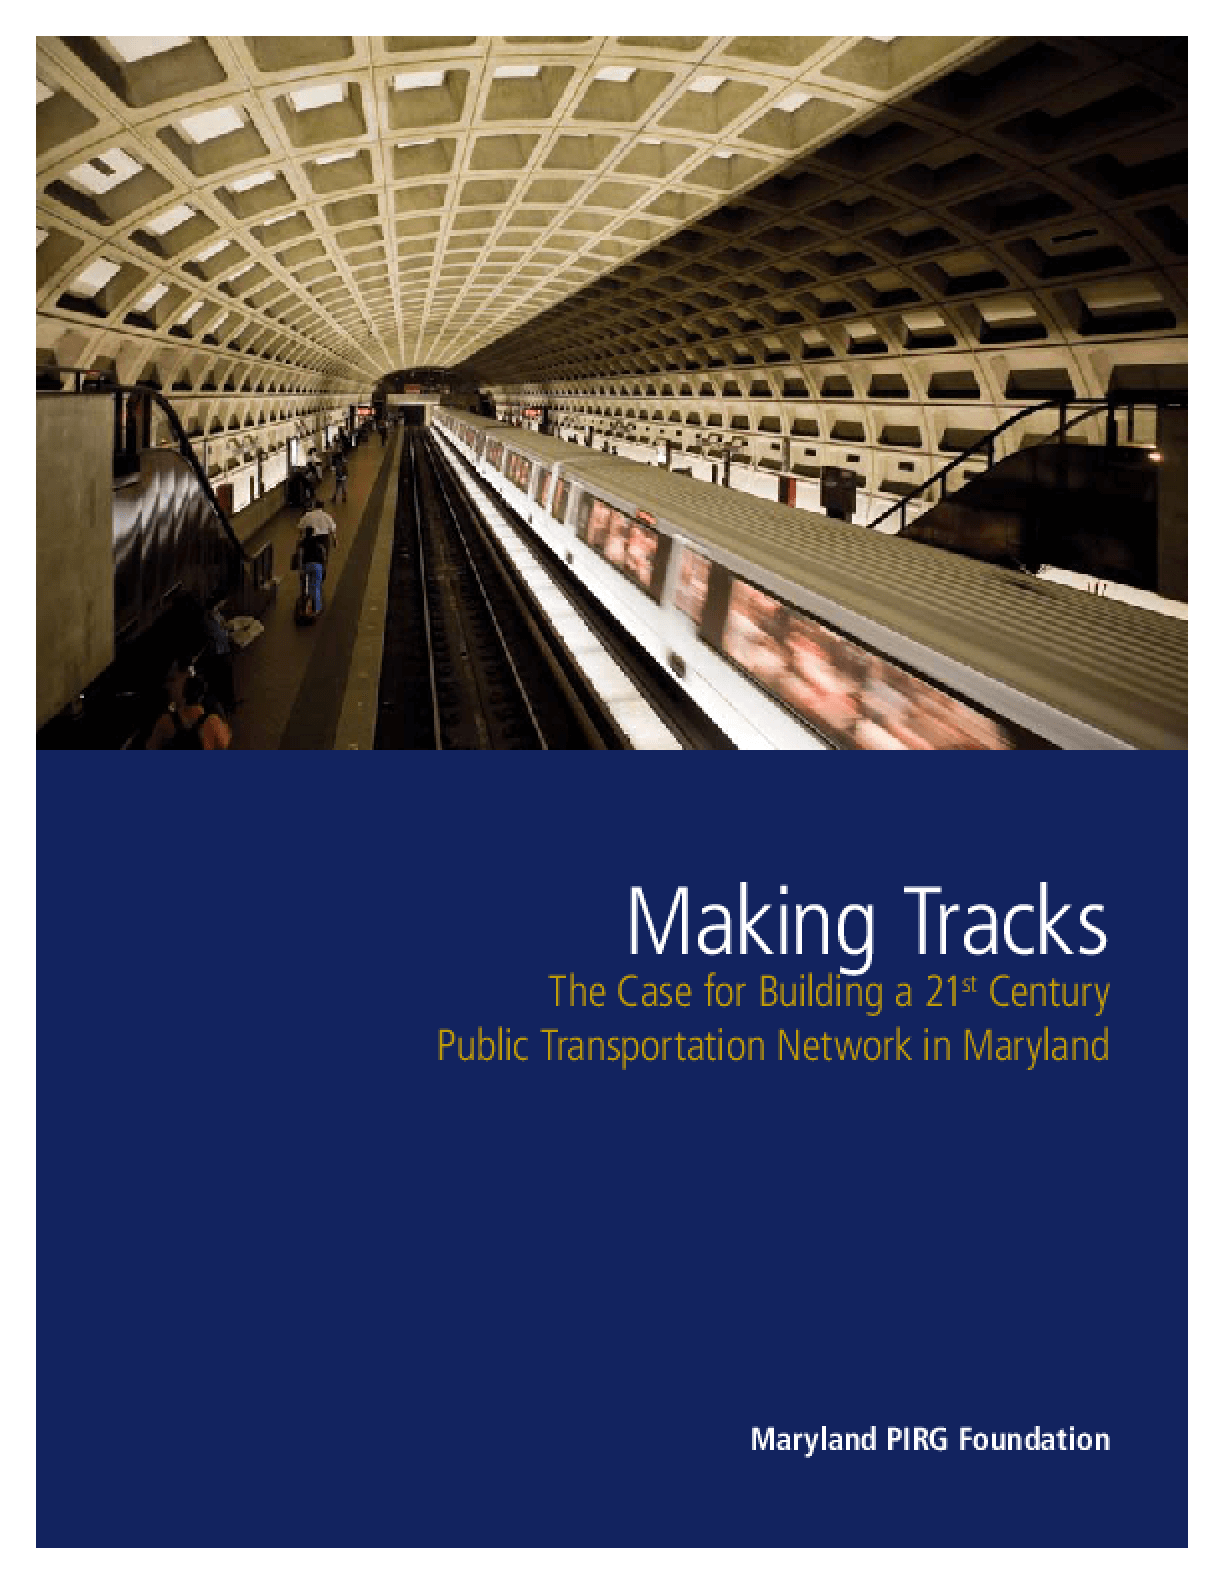 Making Tracks: The Case for Building a 21st Century Transportation Network in Maryland